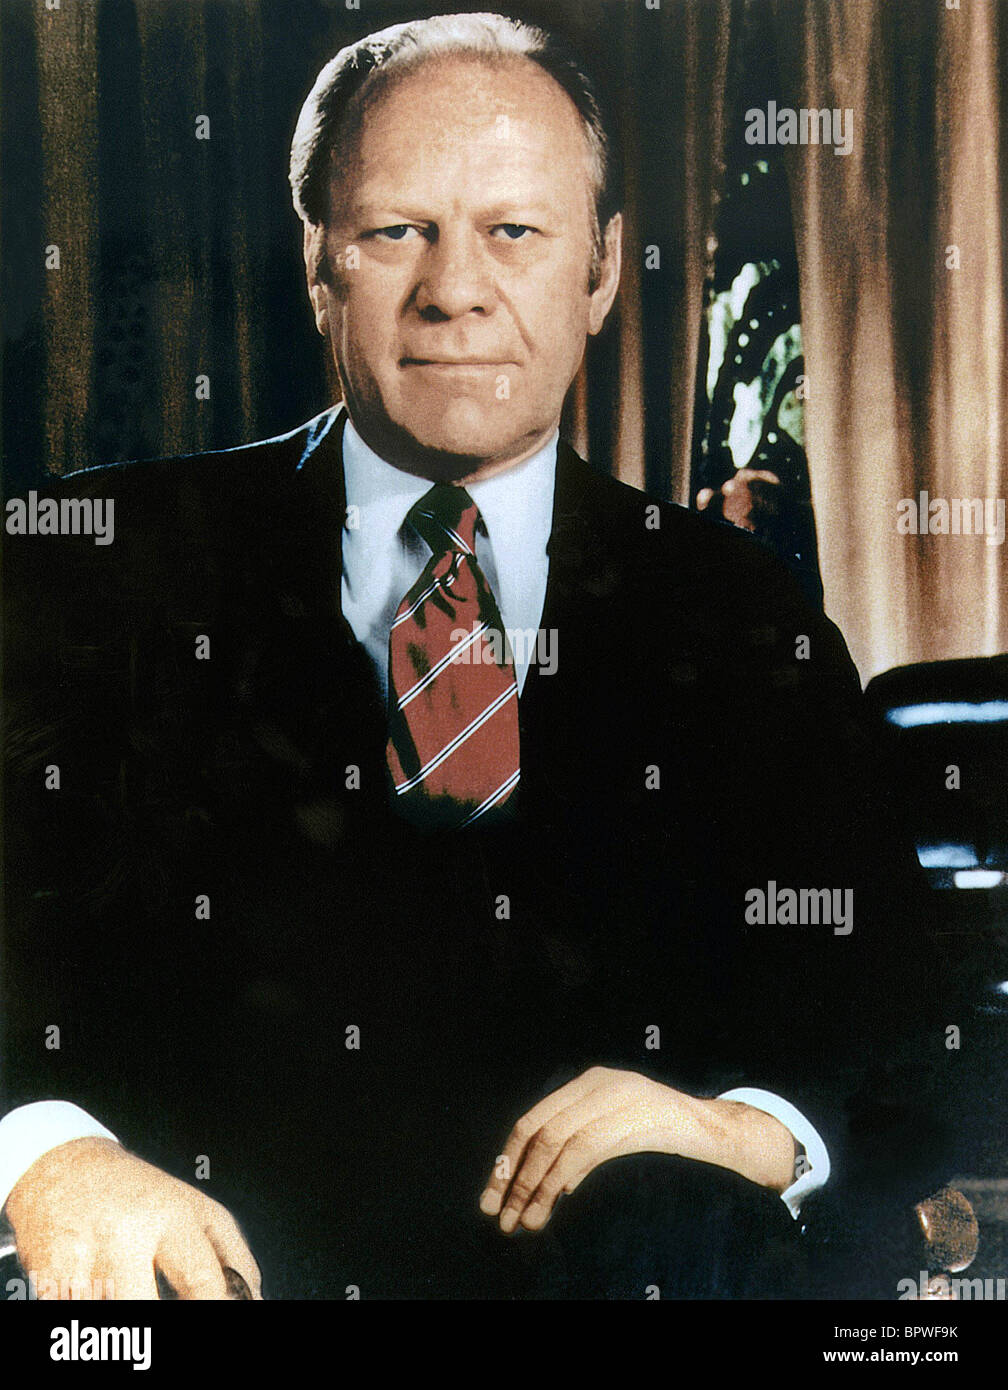 Gerald Ford Portrait Stock Photos Amp Gerald Ford Portrait